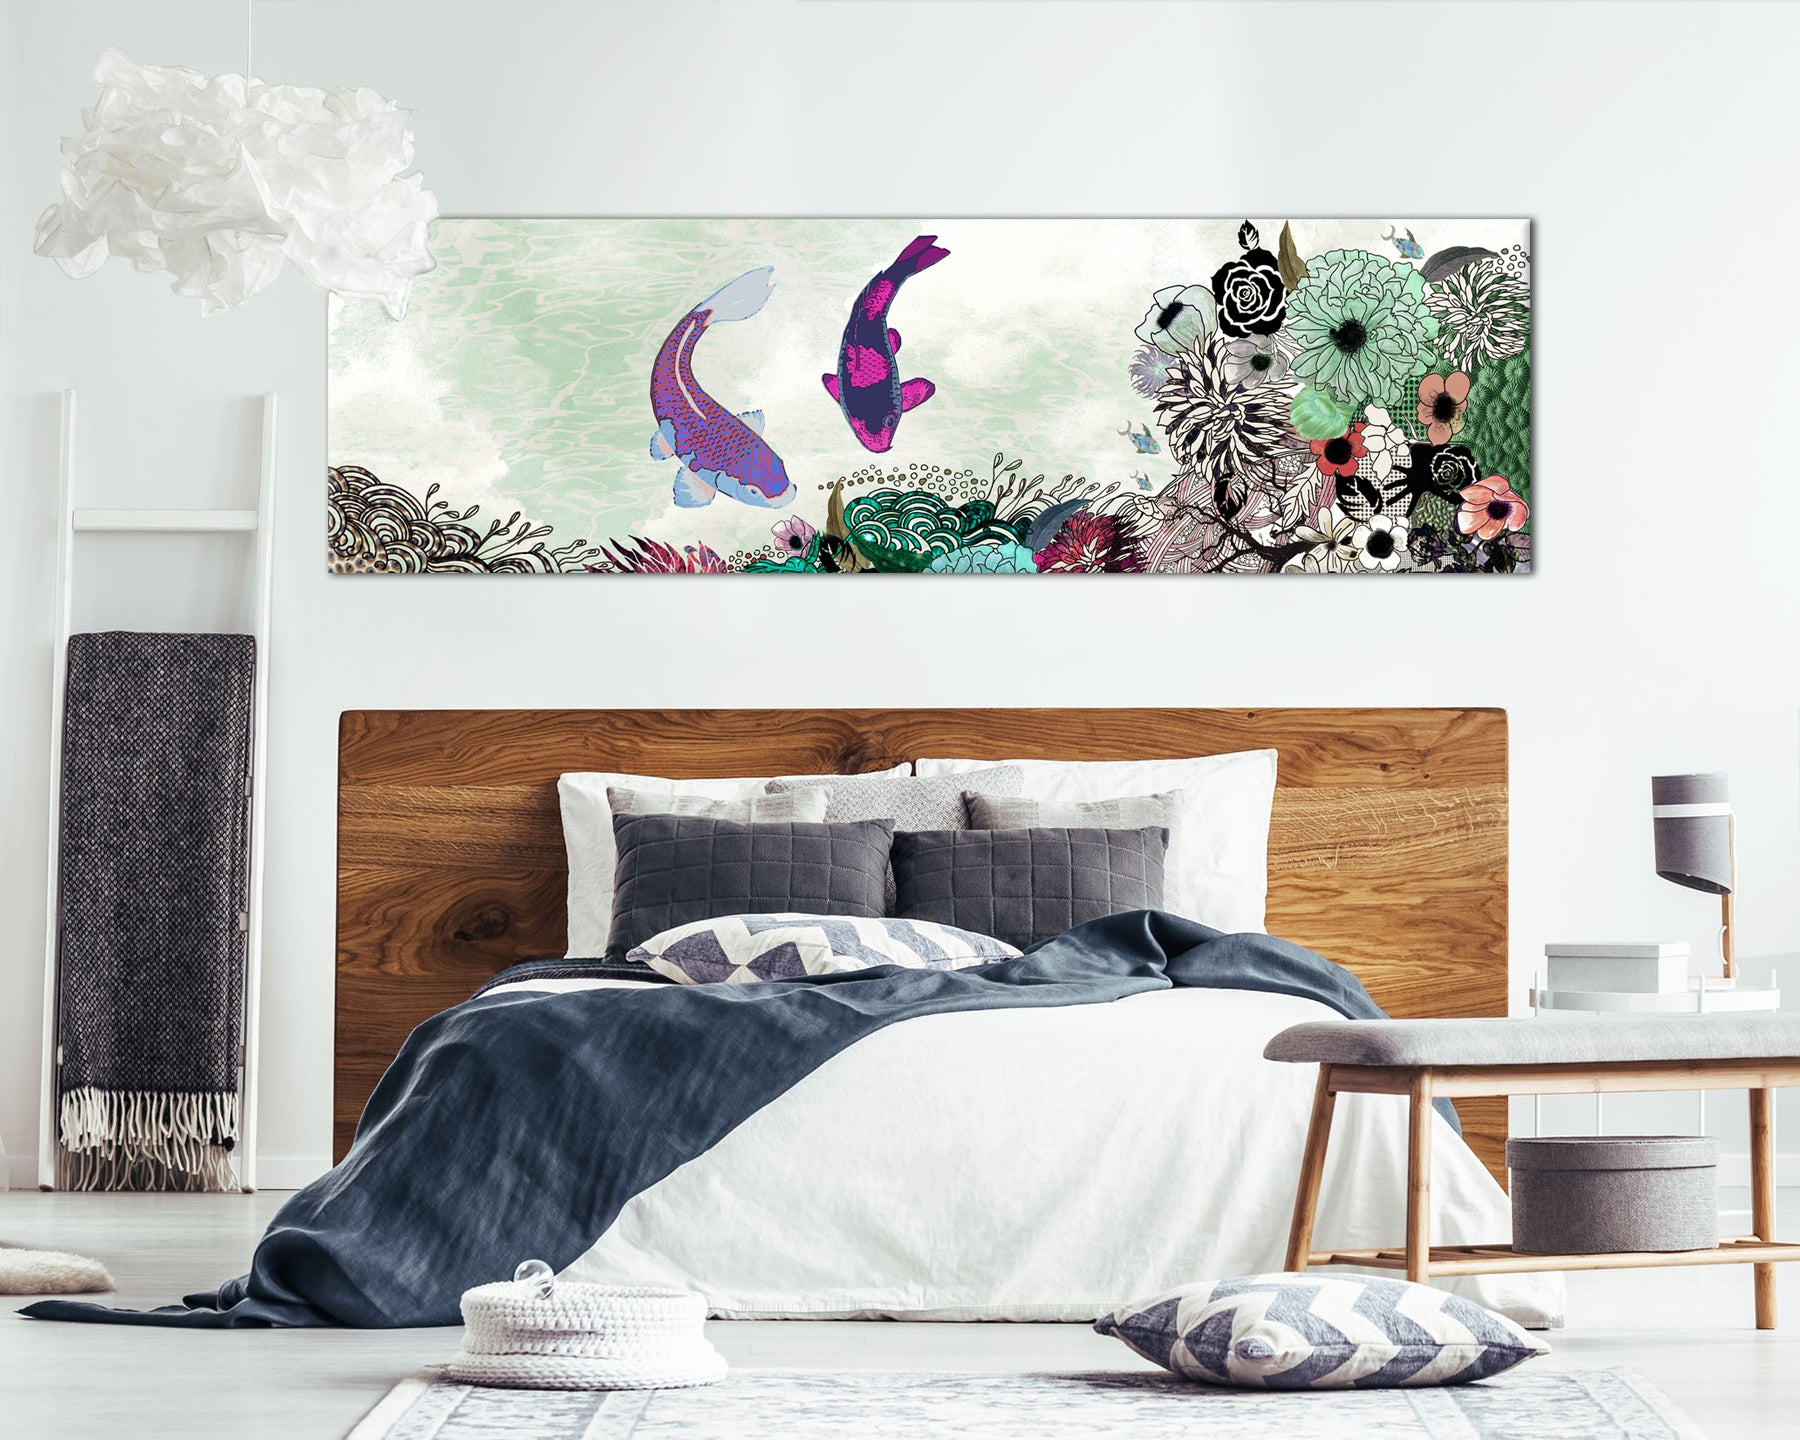 Panoramic painting of colorful koi fish and flowers, hanged above a bedroom bed